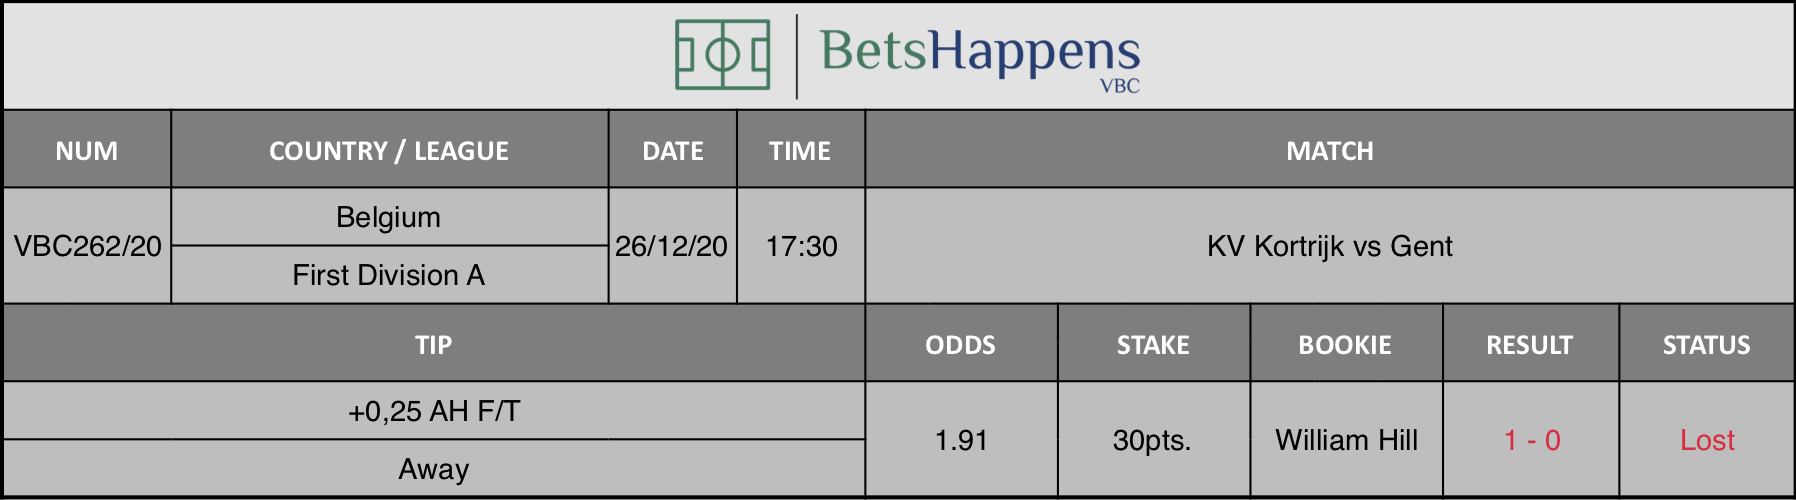 Results of our tip for the KV Kortrijk vs Gent match where +0,25 AH F/T Away is recommended.